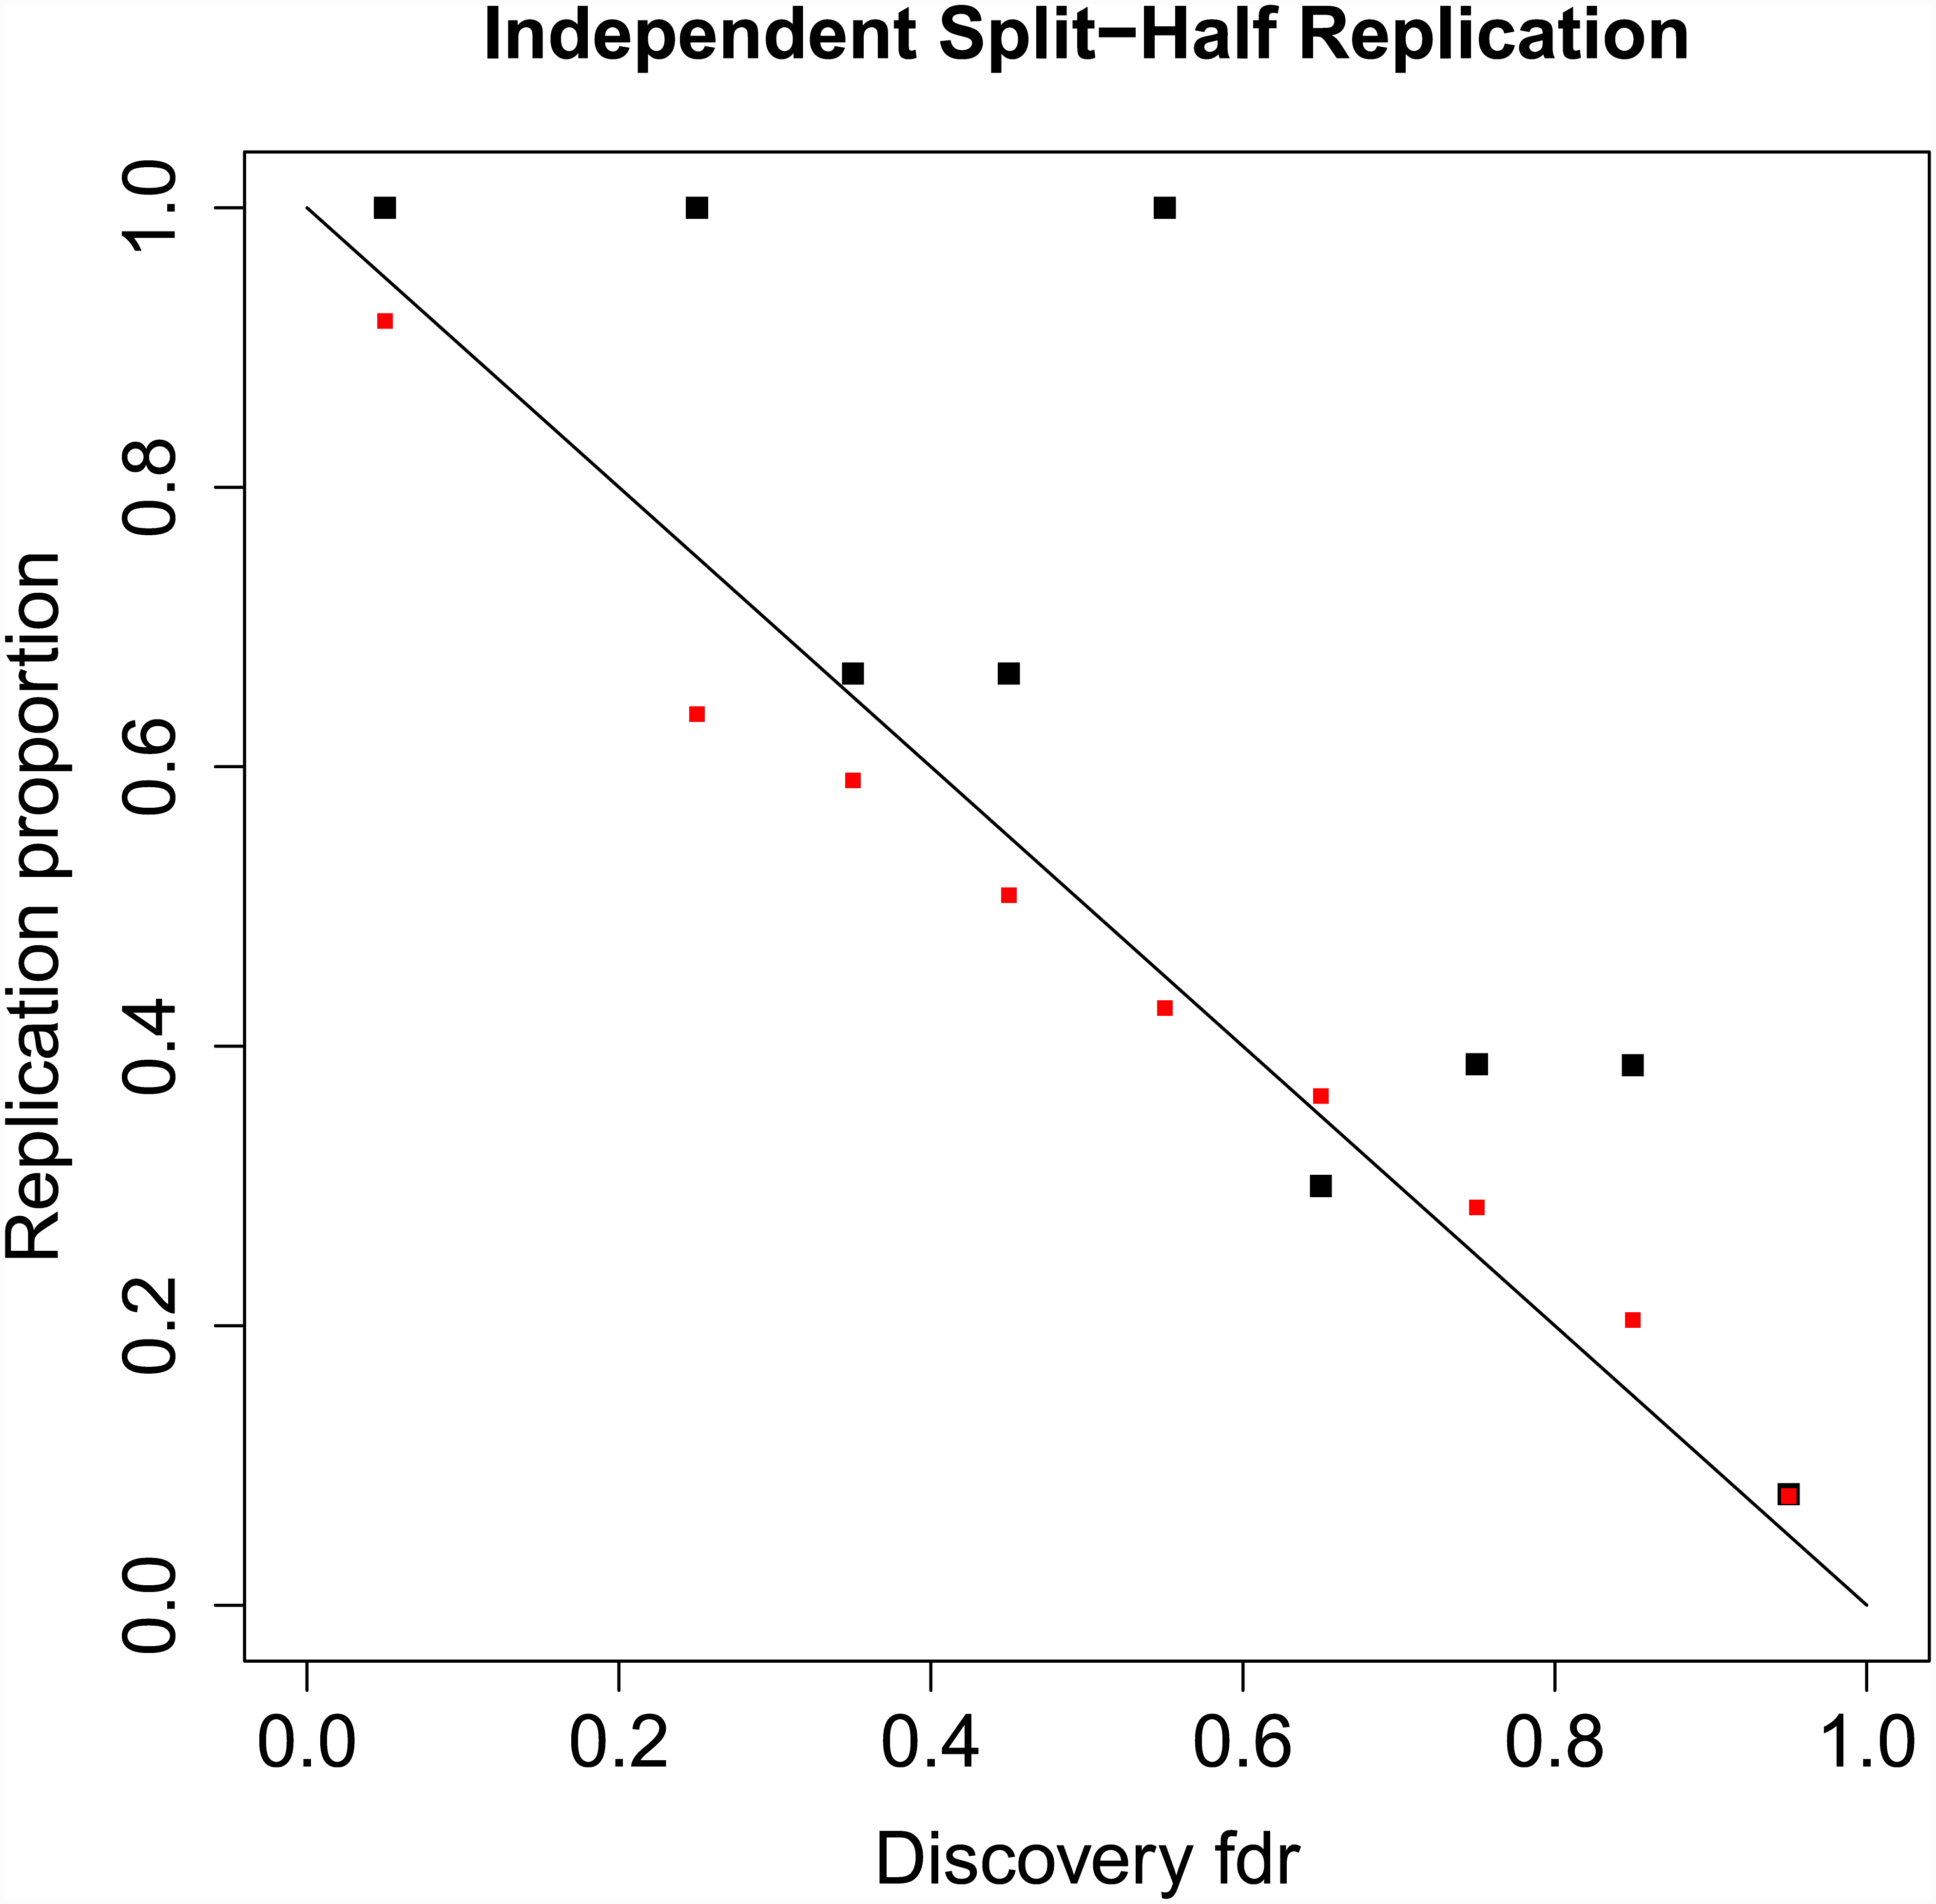 Replication proportions and predicted replication probabilities.